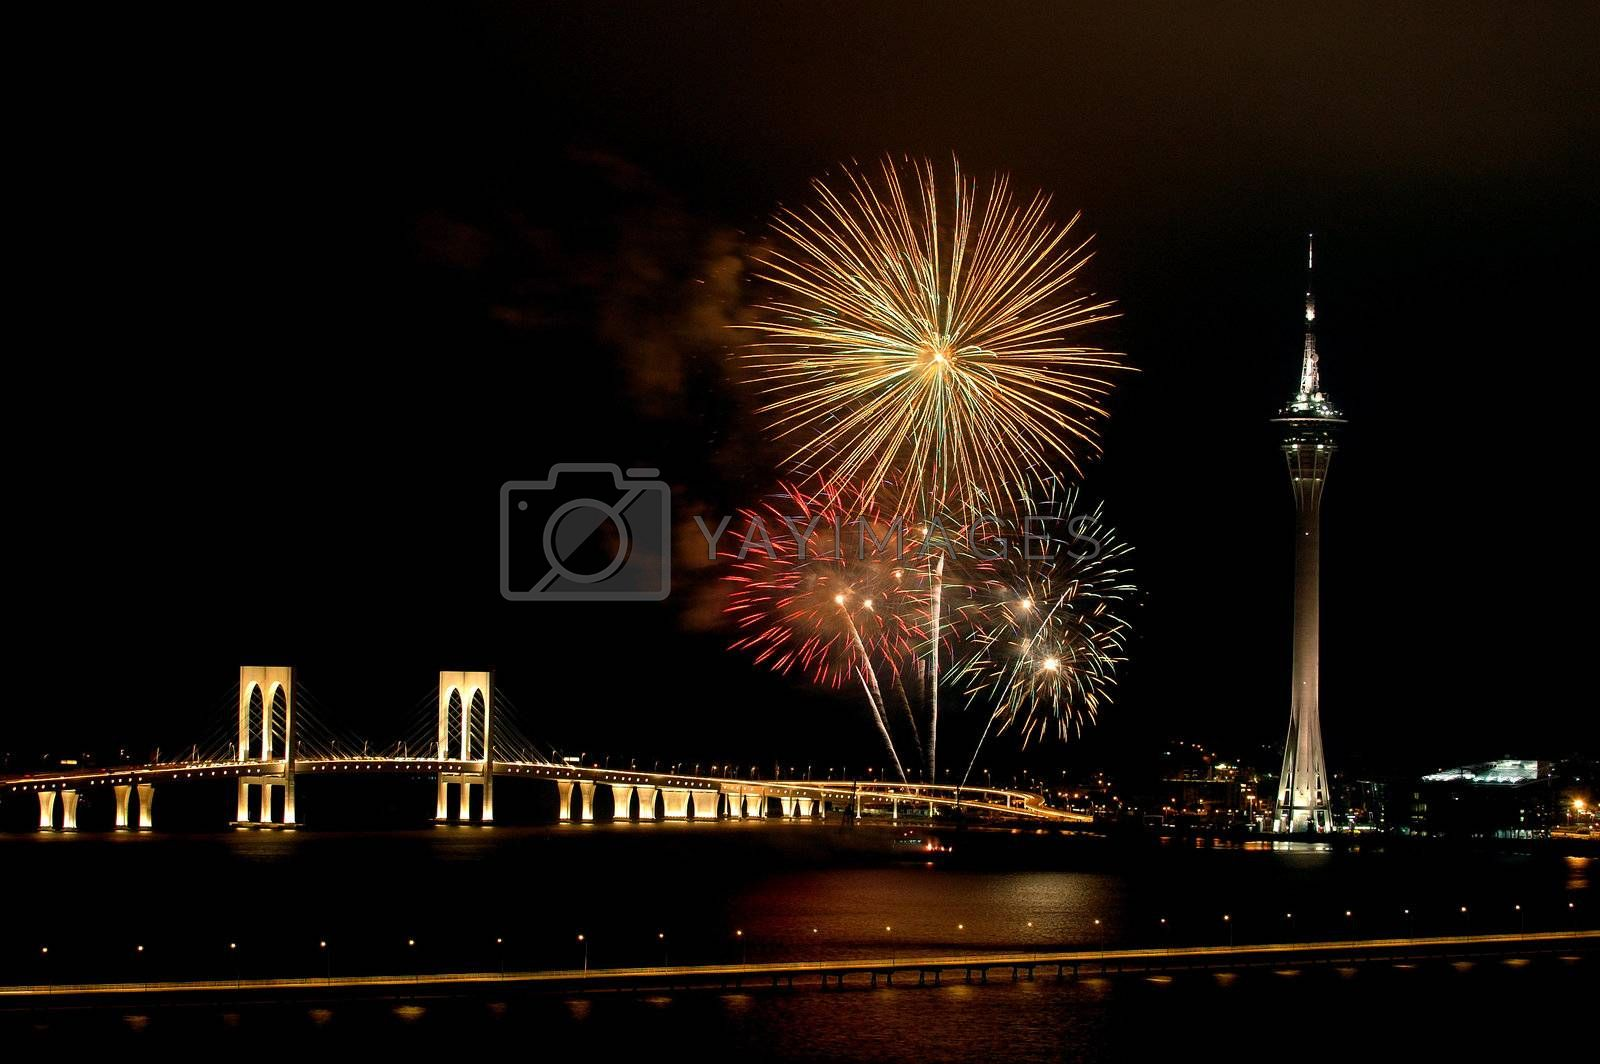 Celebration of New Year in Macau with fireworks beside the Tower Convention and Sai Van bridge